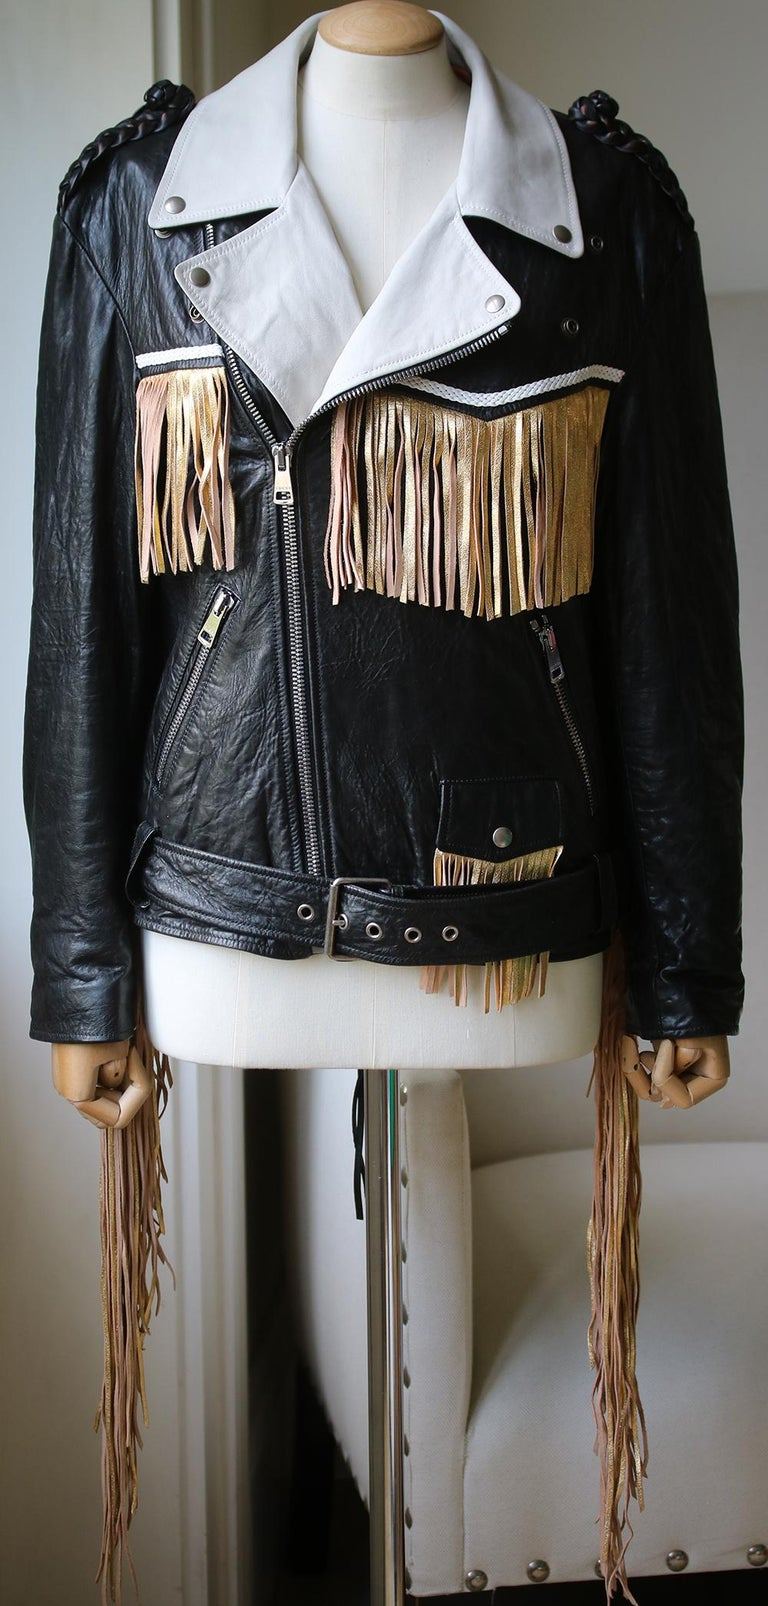 Gucci has a way of taking classic styles and turning them into something extraordinary, and this jacket that hybridises moto and Western silhouettes is the perfect example of that. Composition: 100% lamb leather. Trim: calf leather.   Size: IT 38